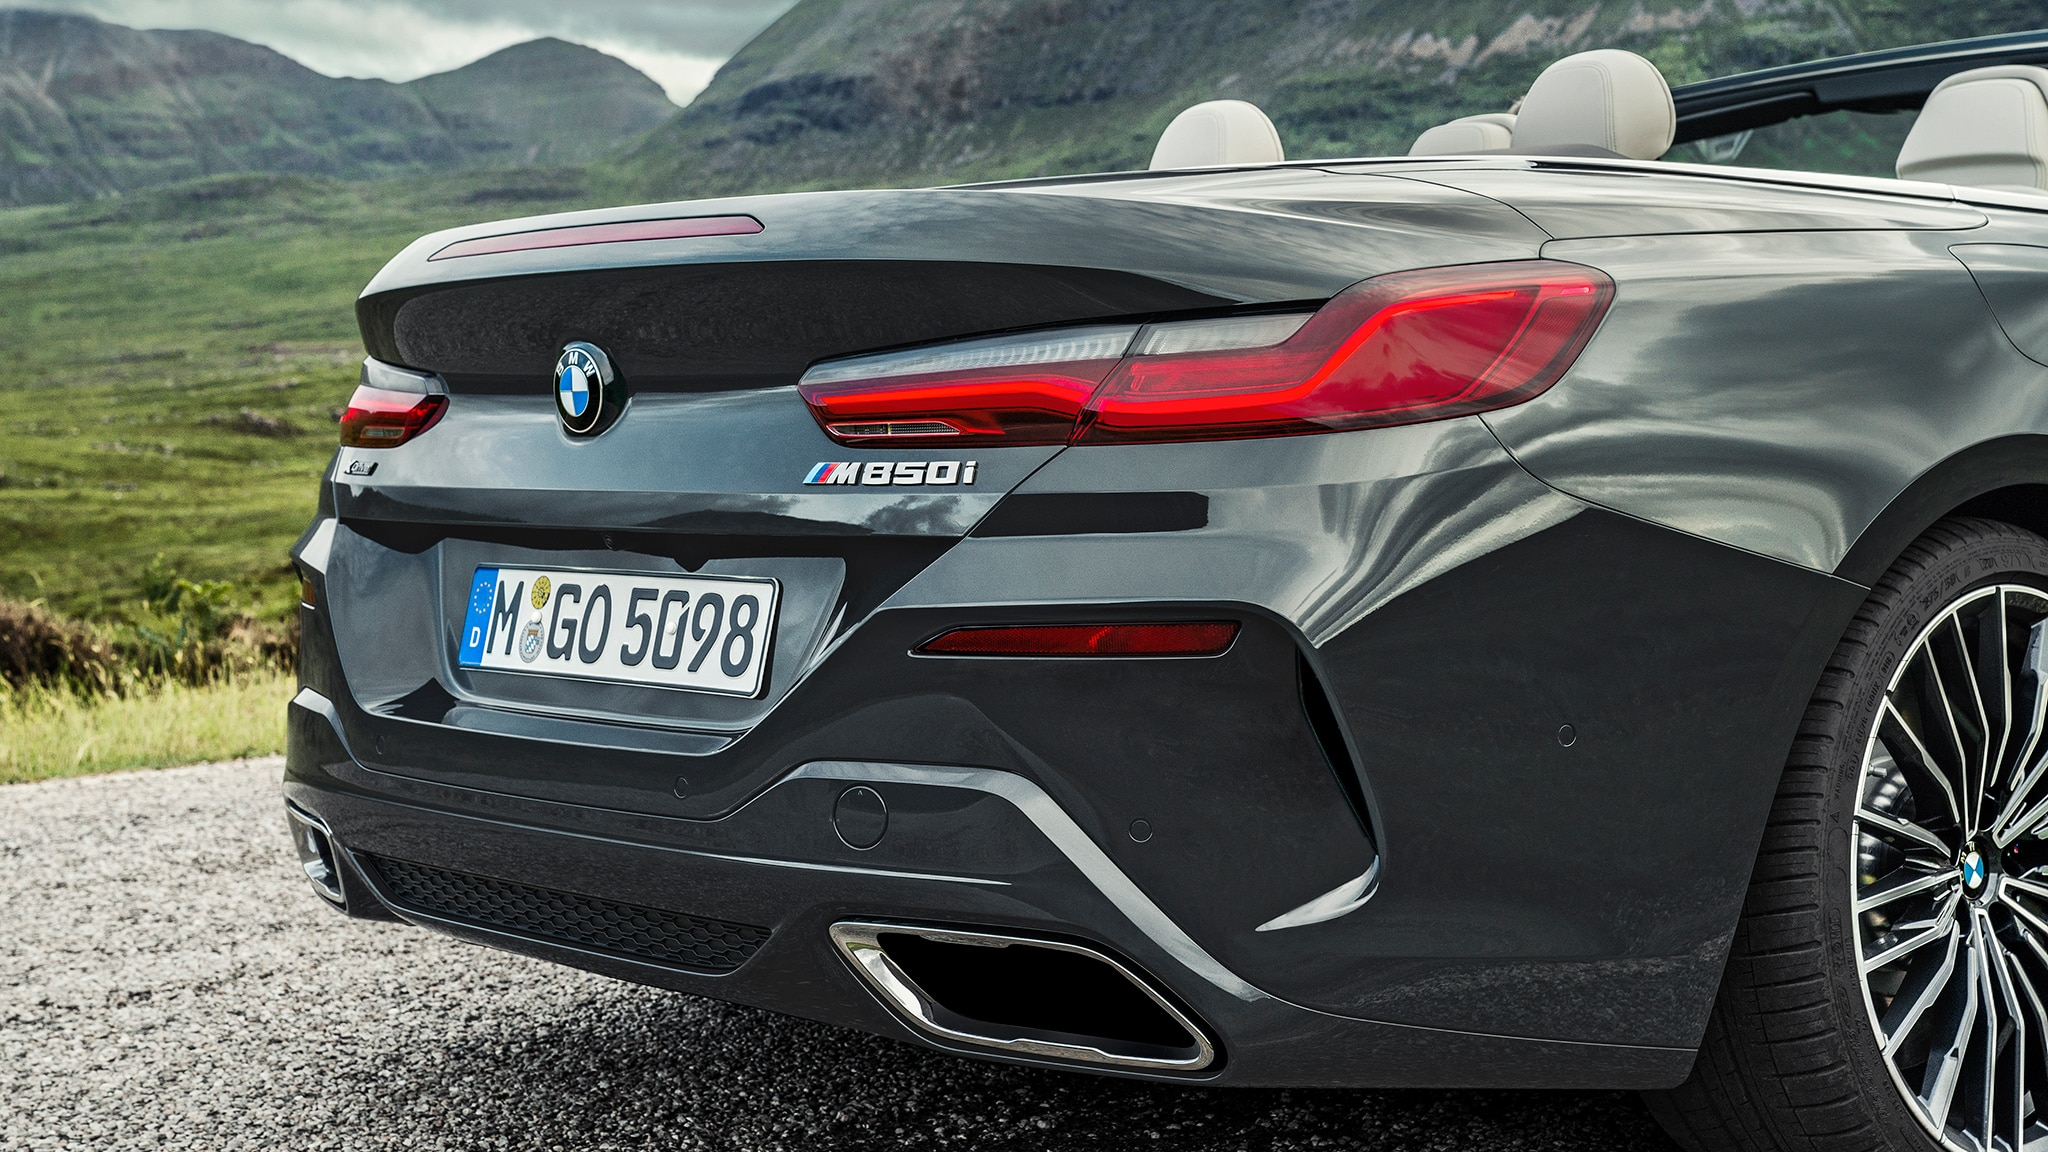 2019 BMW M850i Convertible Rear Clip